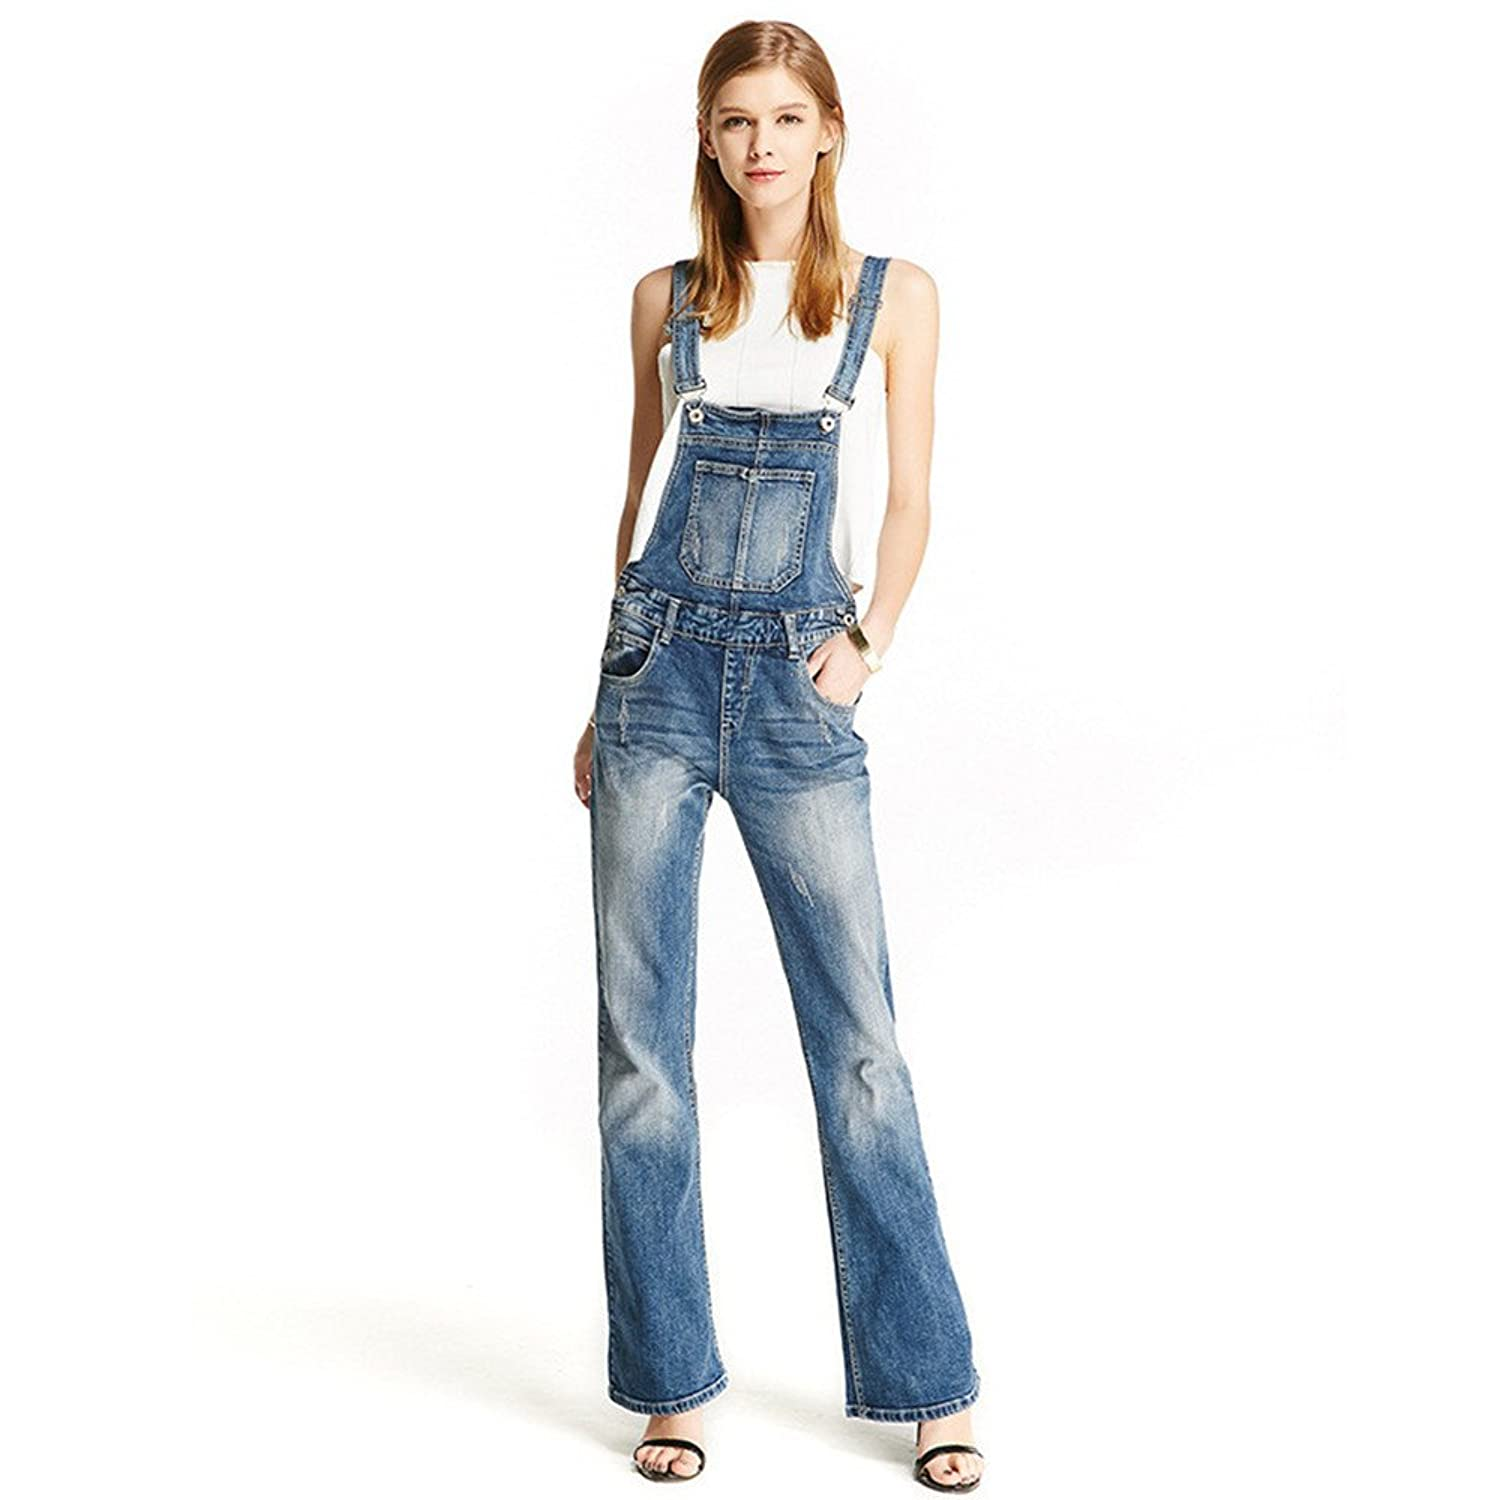 DUNGAREES - Jumpsuits Solid & Striped Cheap Perfect Recommend IzWIQ